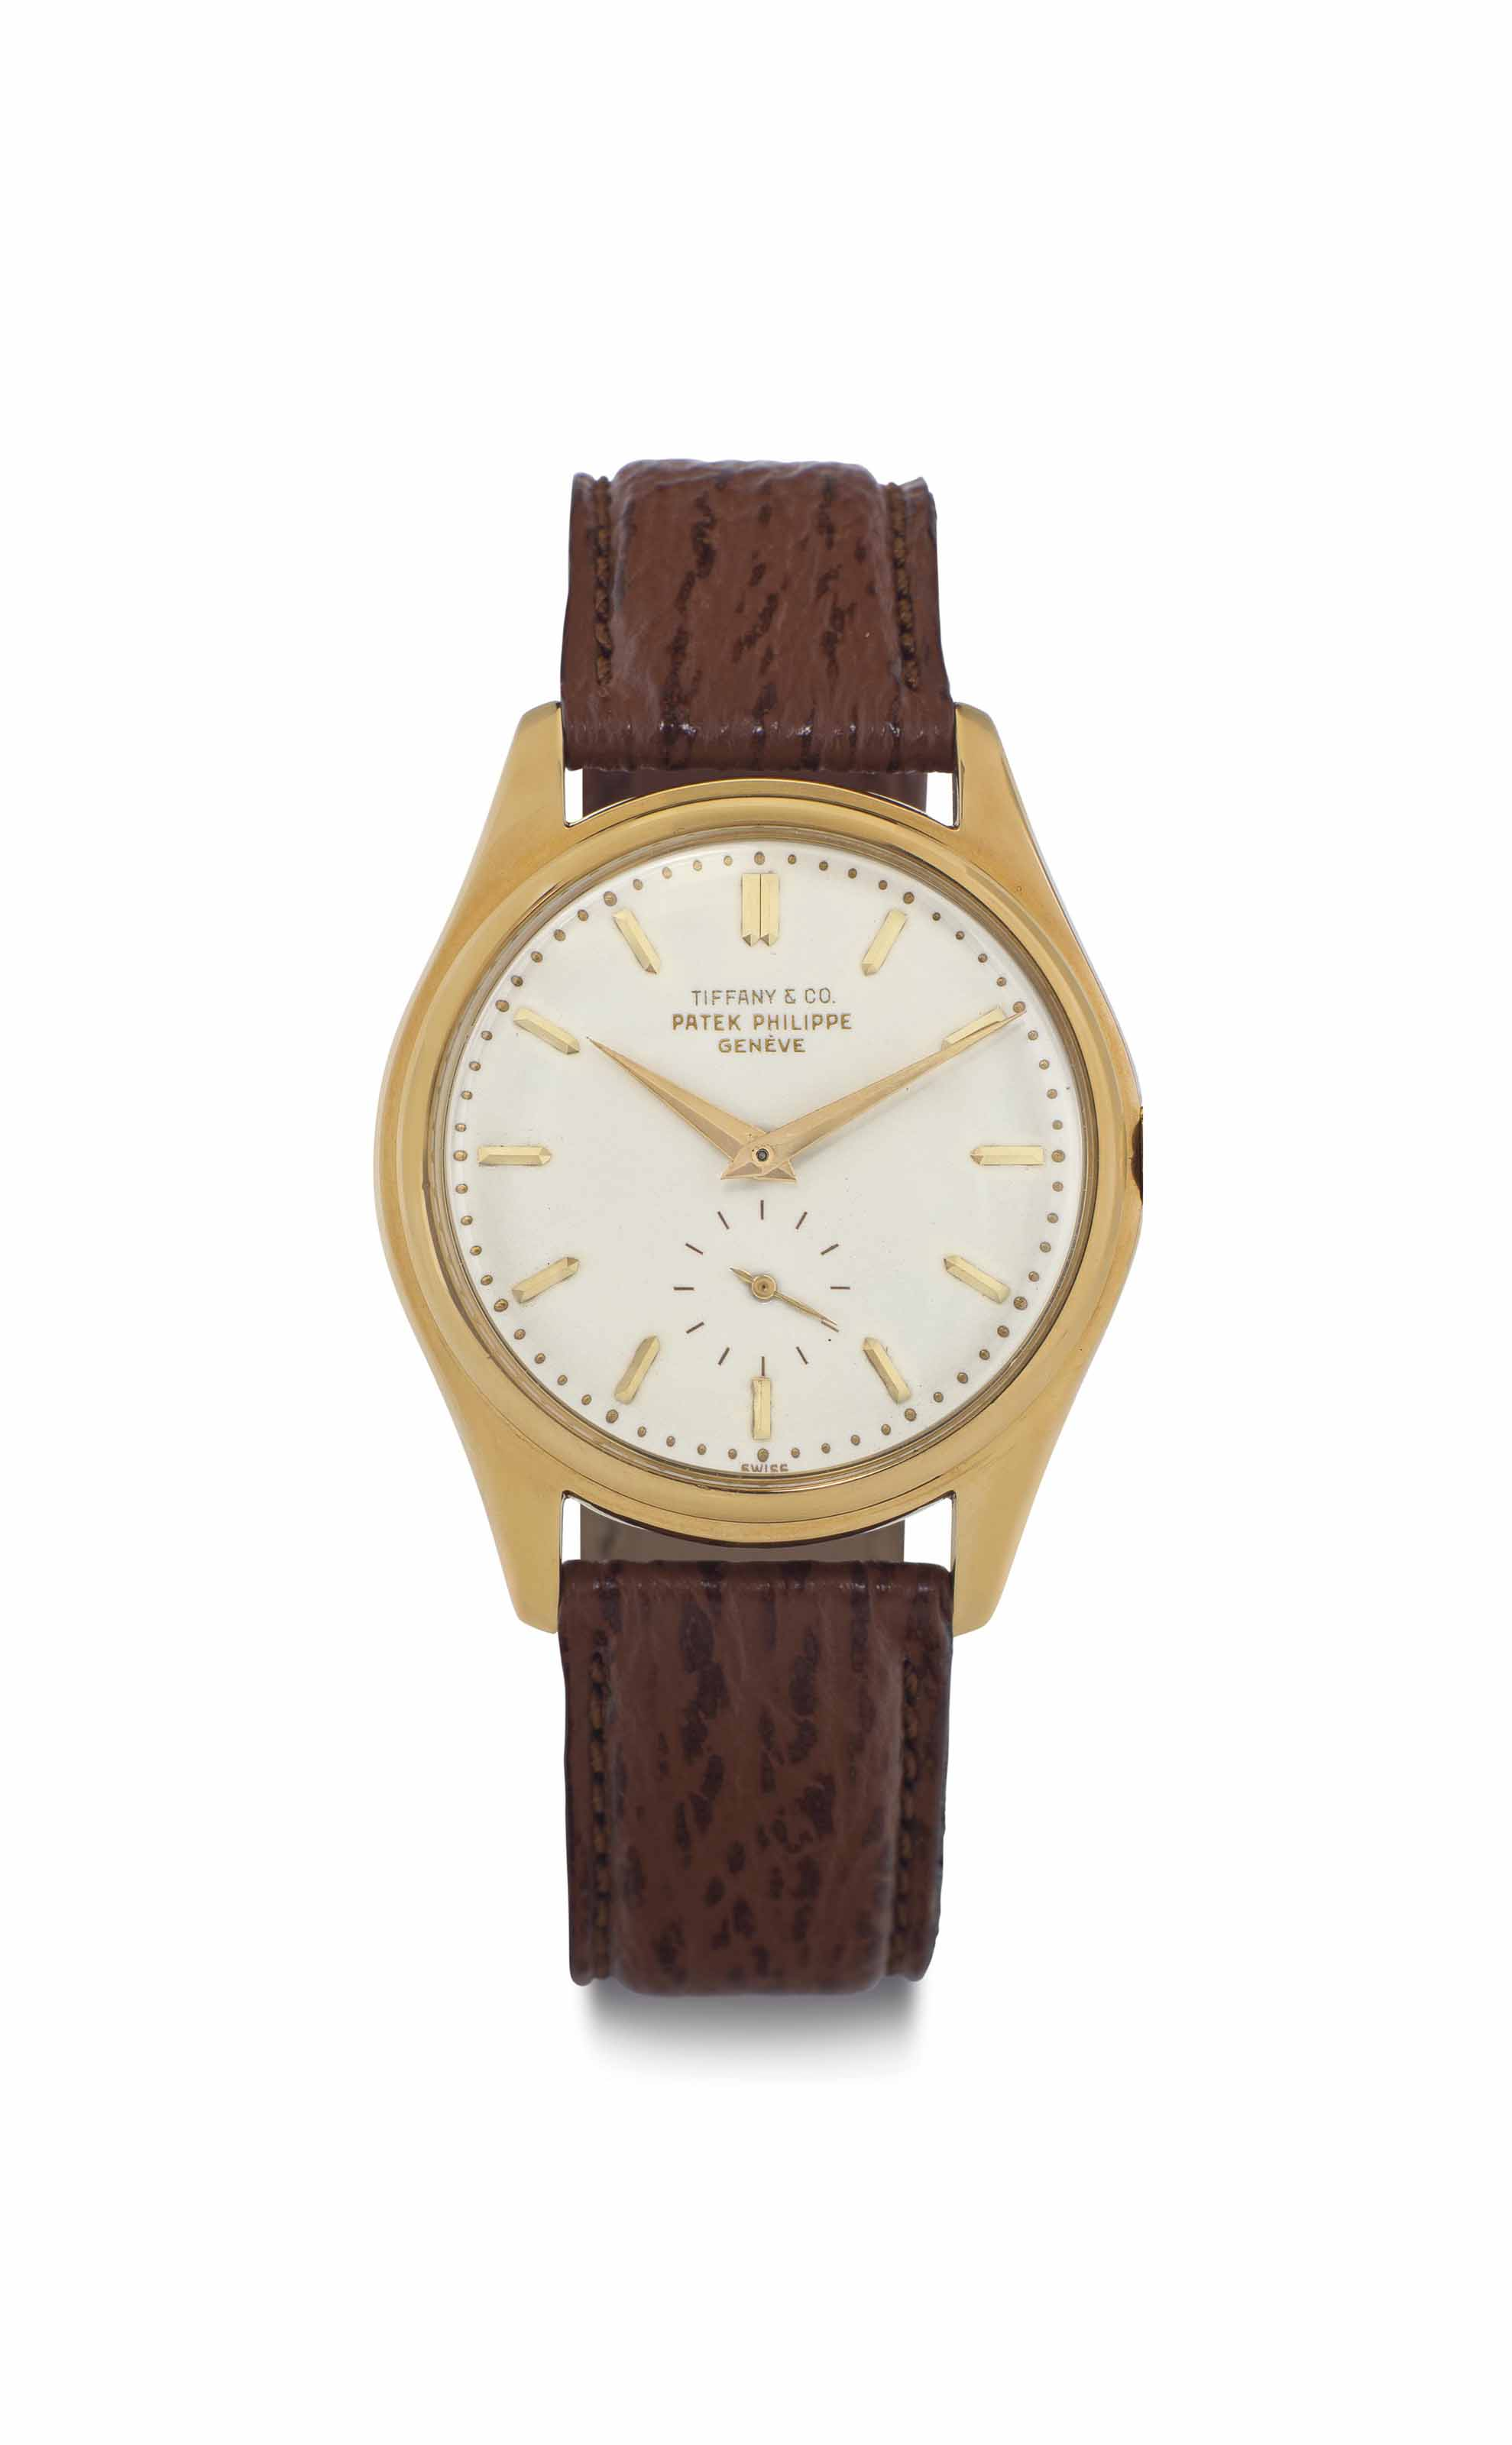 Patek Philippe. A Fine and Rare 18k Gold Automatic Wristwatch with Enamel Dial and Original Certificate Booklet